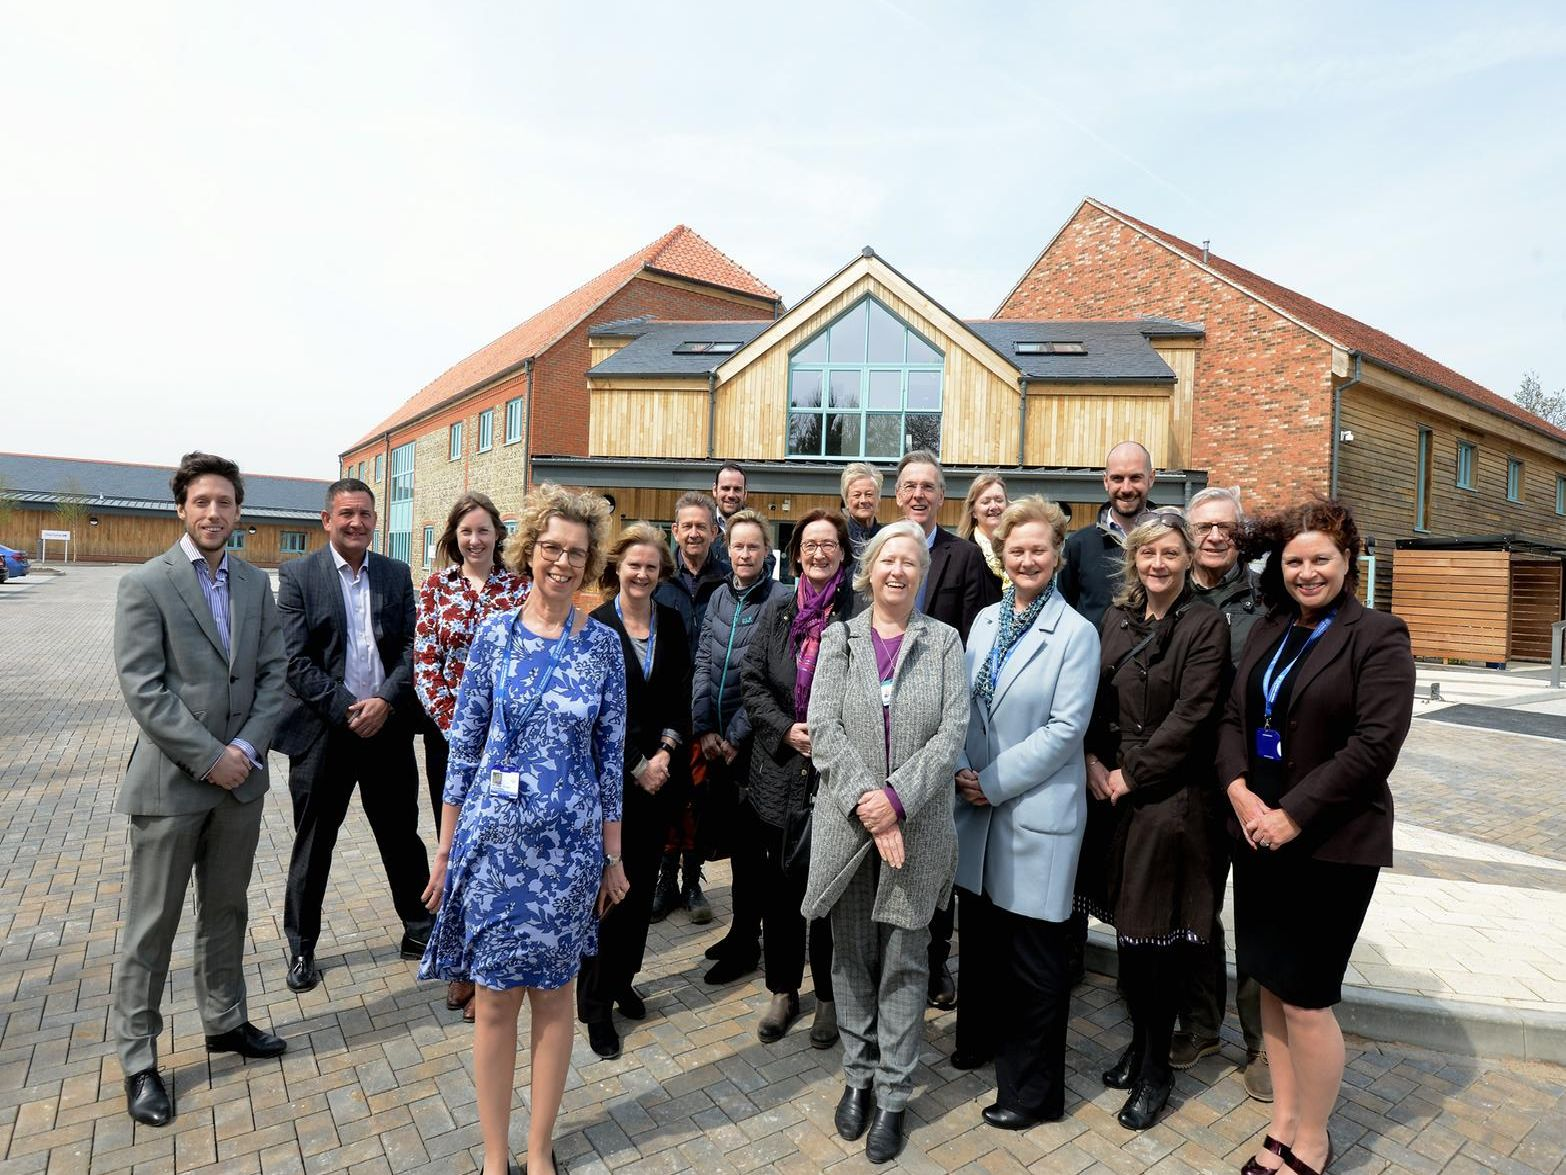 The Senior management, trustees and the transition project team ouside the new Hospice